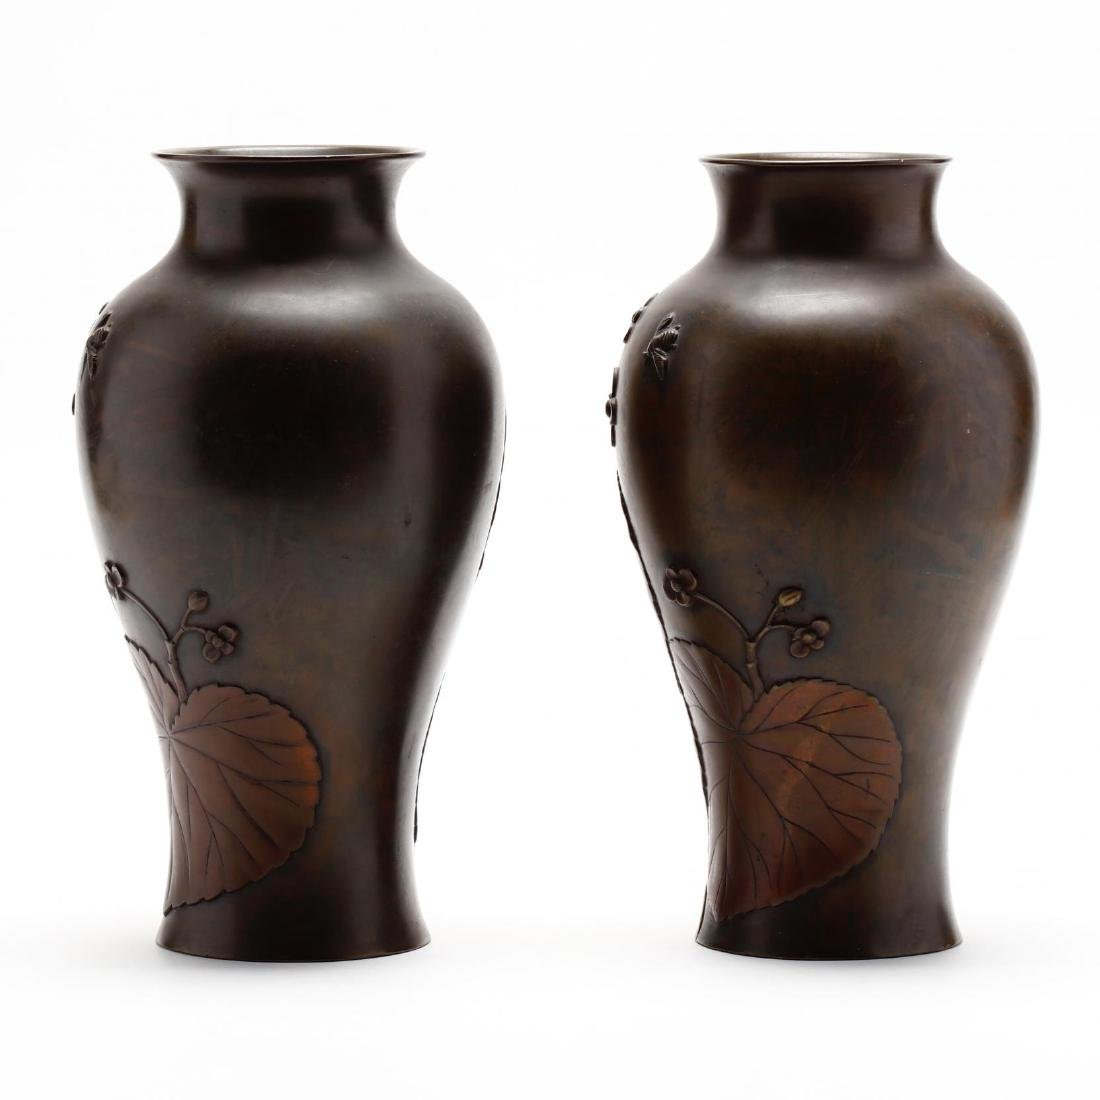 A Pair of Japanese Bronze Vases by Yoshinobu - 2